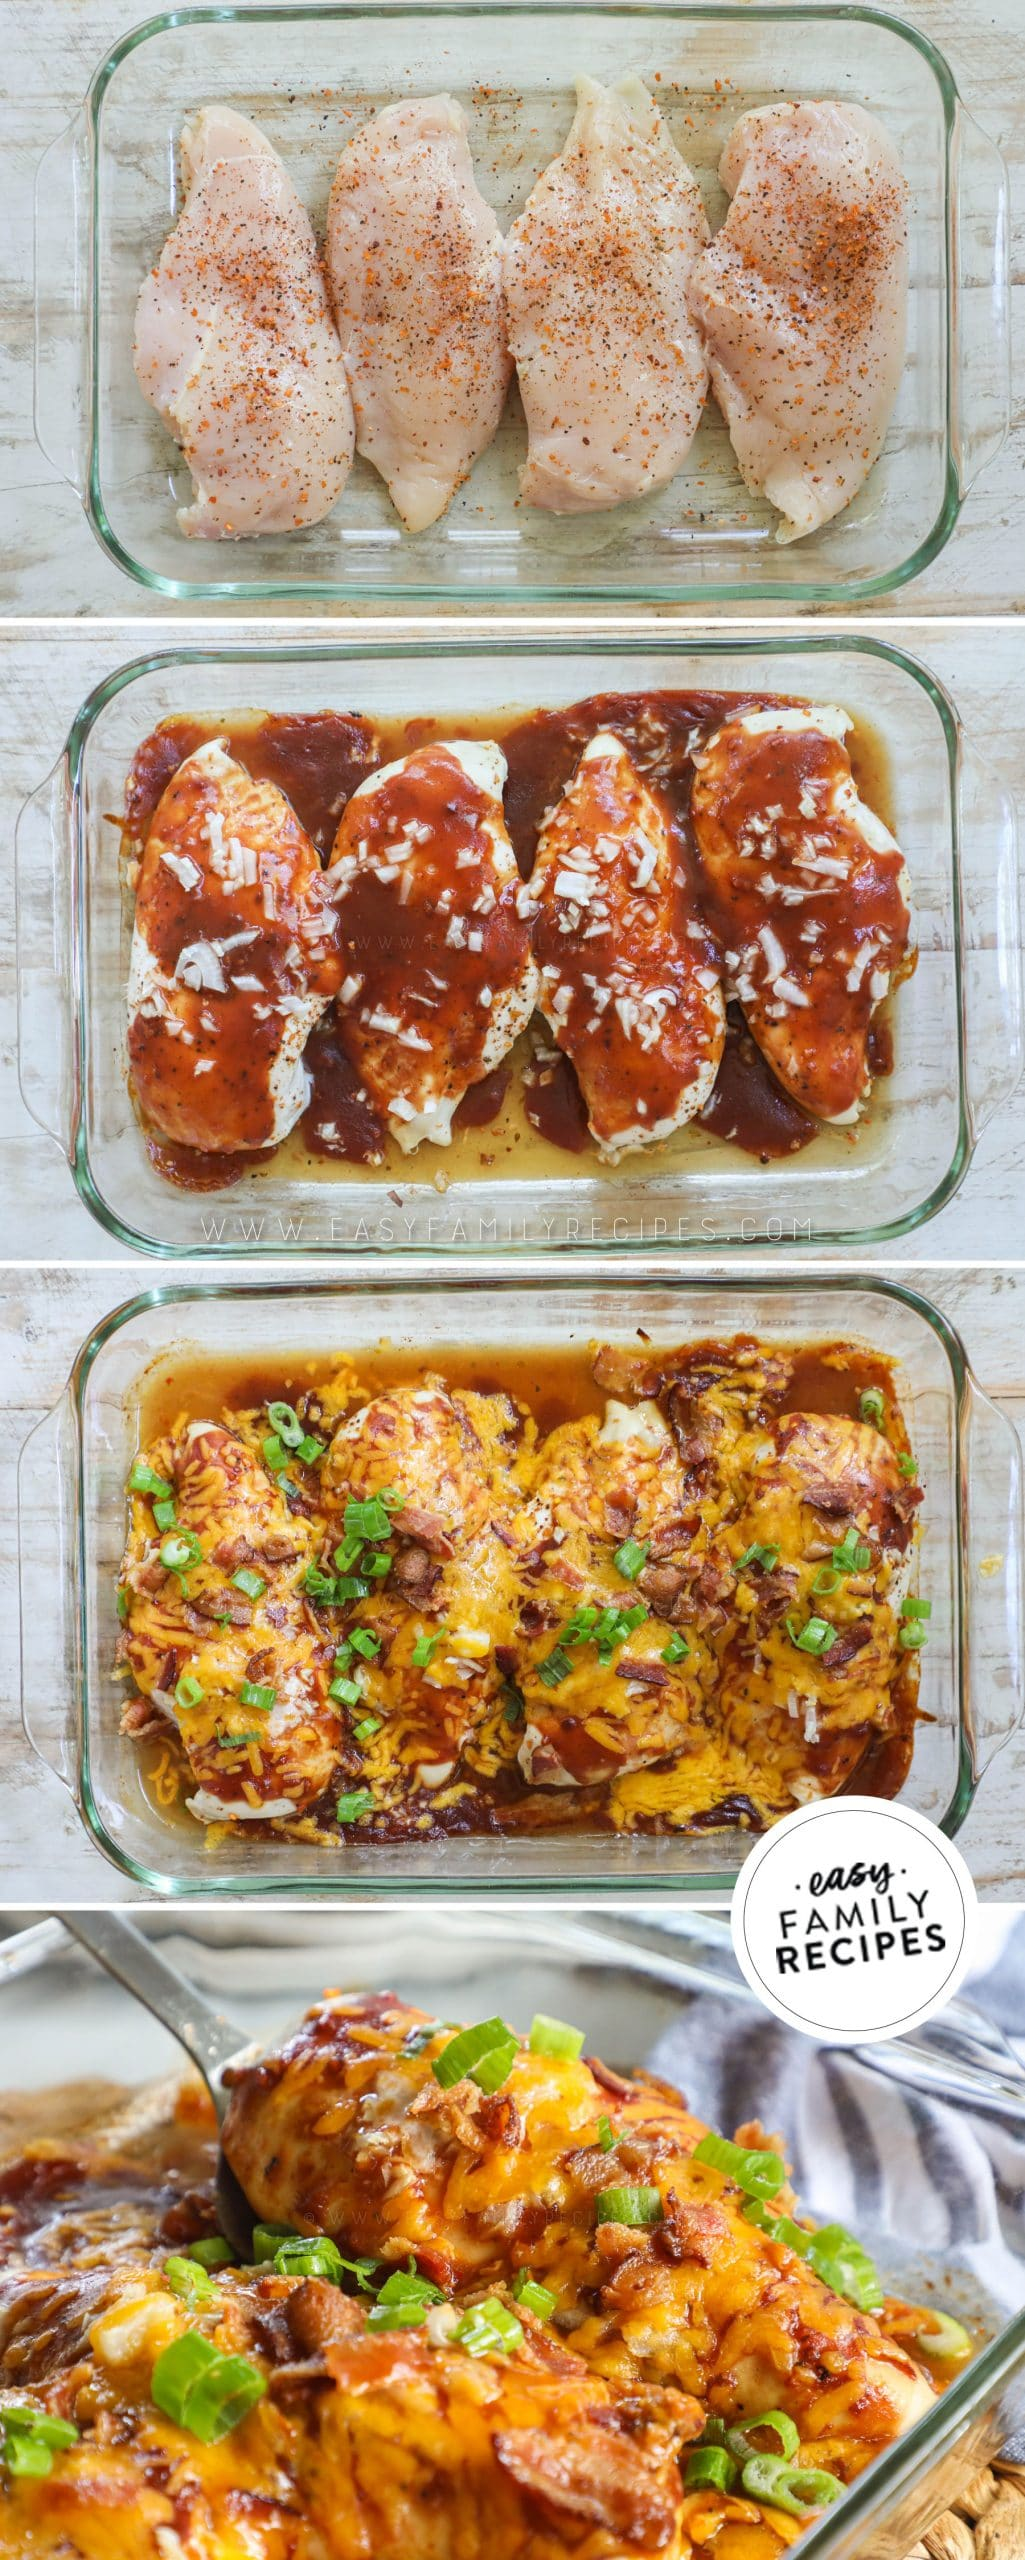 Process photos for how to make Mesquite chicken bake recipe - 1. Season chicken breast with mesquite seasoning and lay in a casserole dish. 2. Smother with mesquite BBQ sauce and red onion. 3. Top with cheese and crumbled bacon. 4. Garnish with green onion.